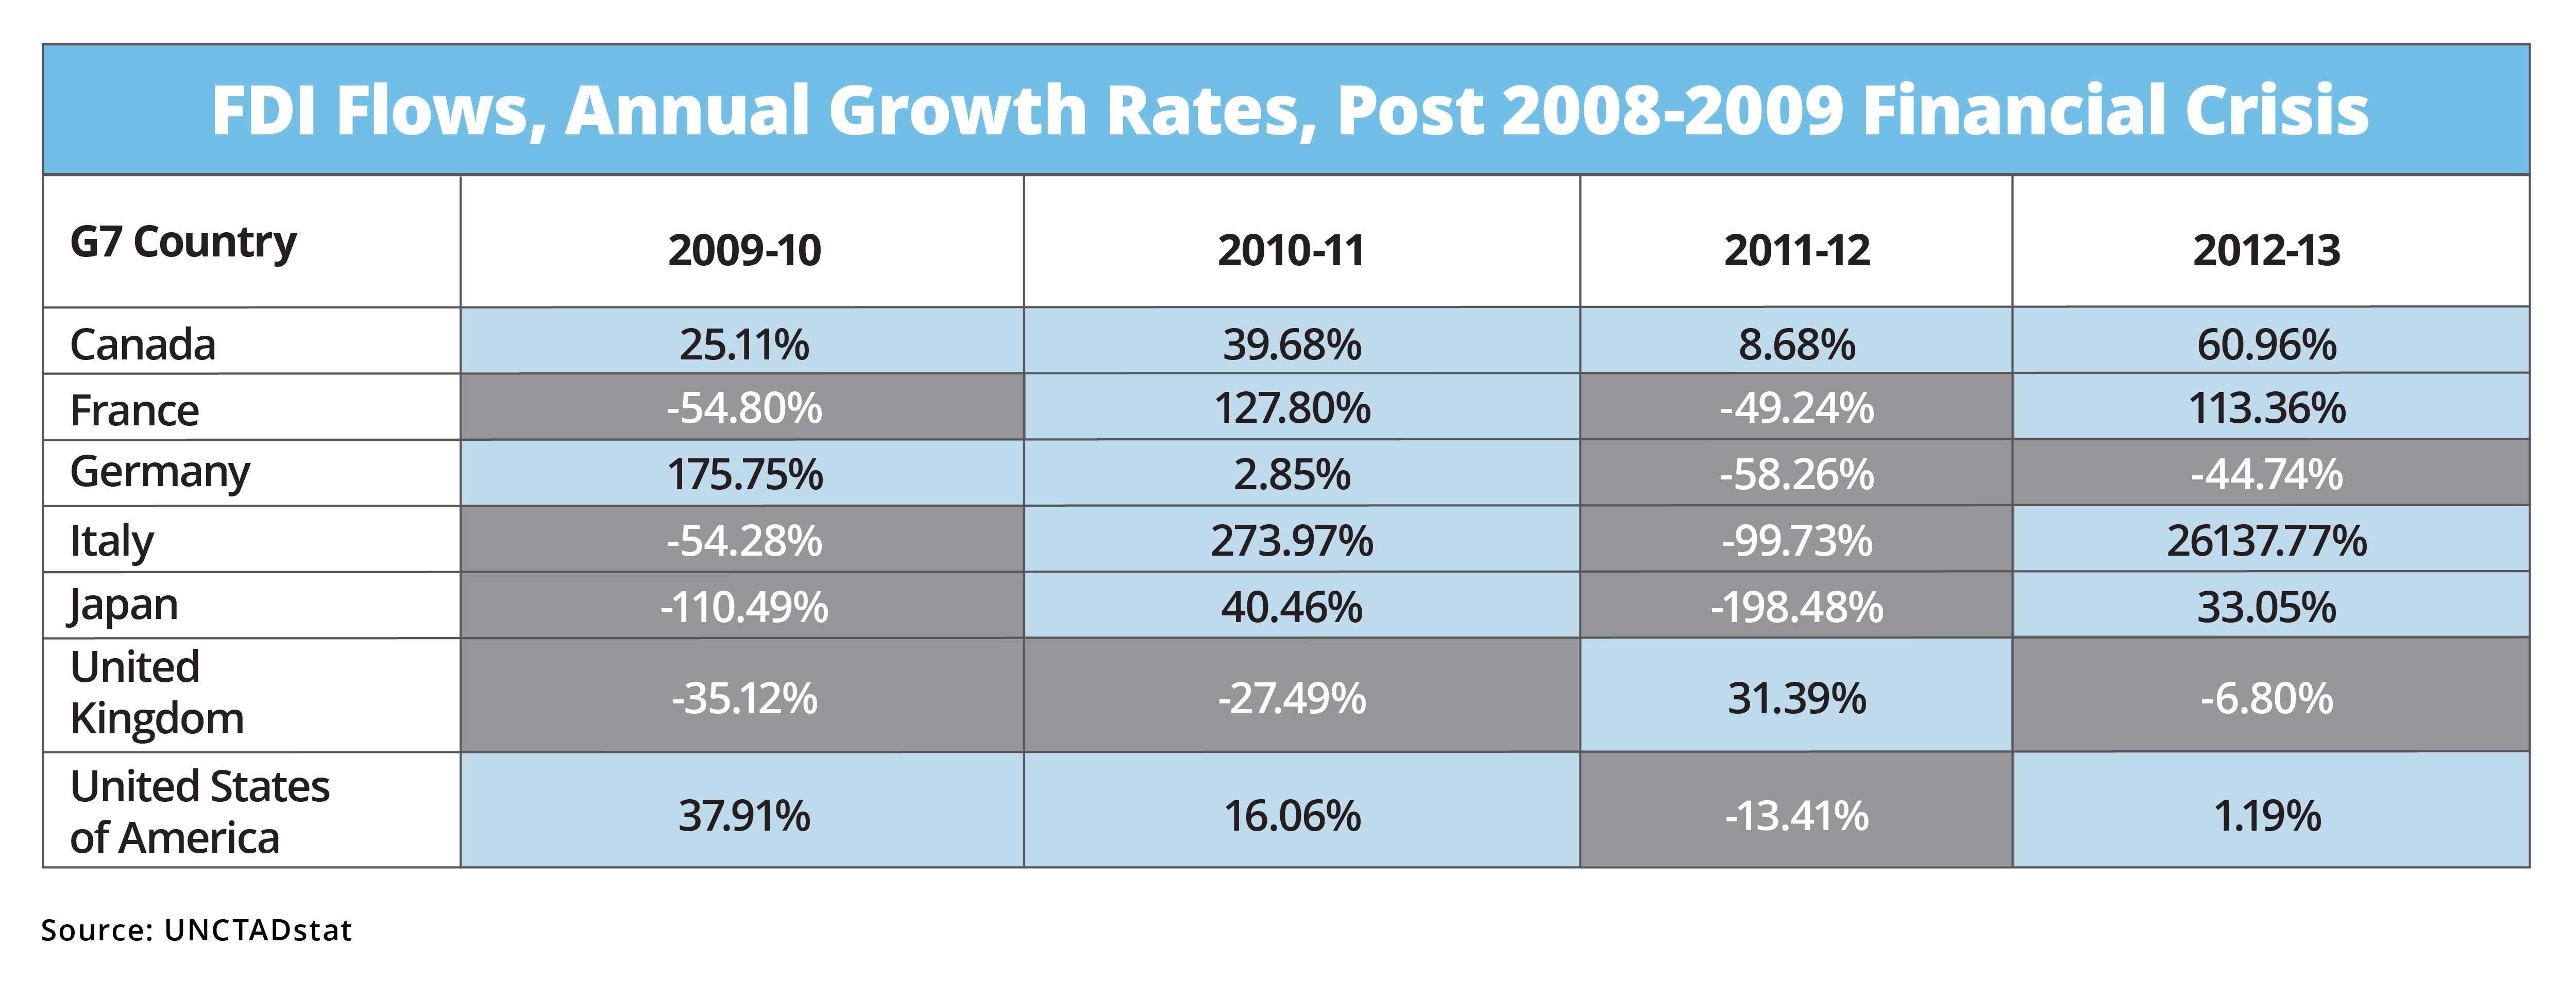 chart showing FDI Flows, Annual Growth Rates, Post 2008-2009 Financial Crisis in G7 countries